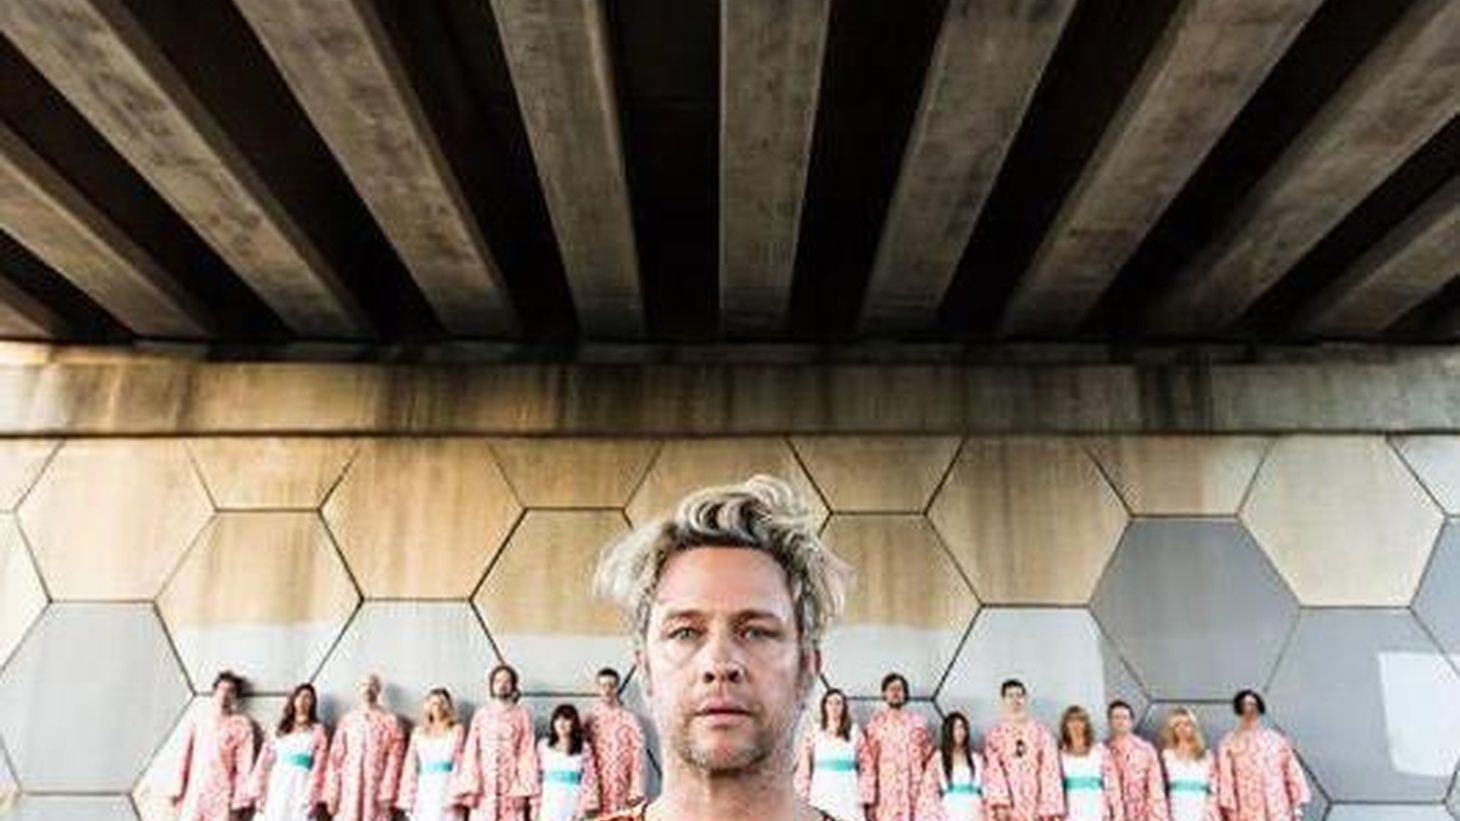 The Polyphonic Spree is back! The 22-person robed choral ensemble led by front-man Tim DeLaughter has returned with its first studio disc since 2007.